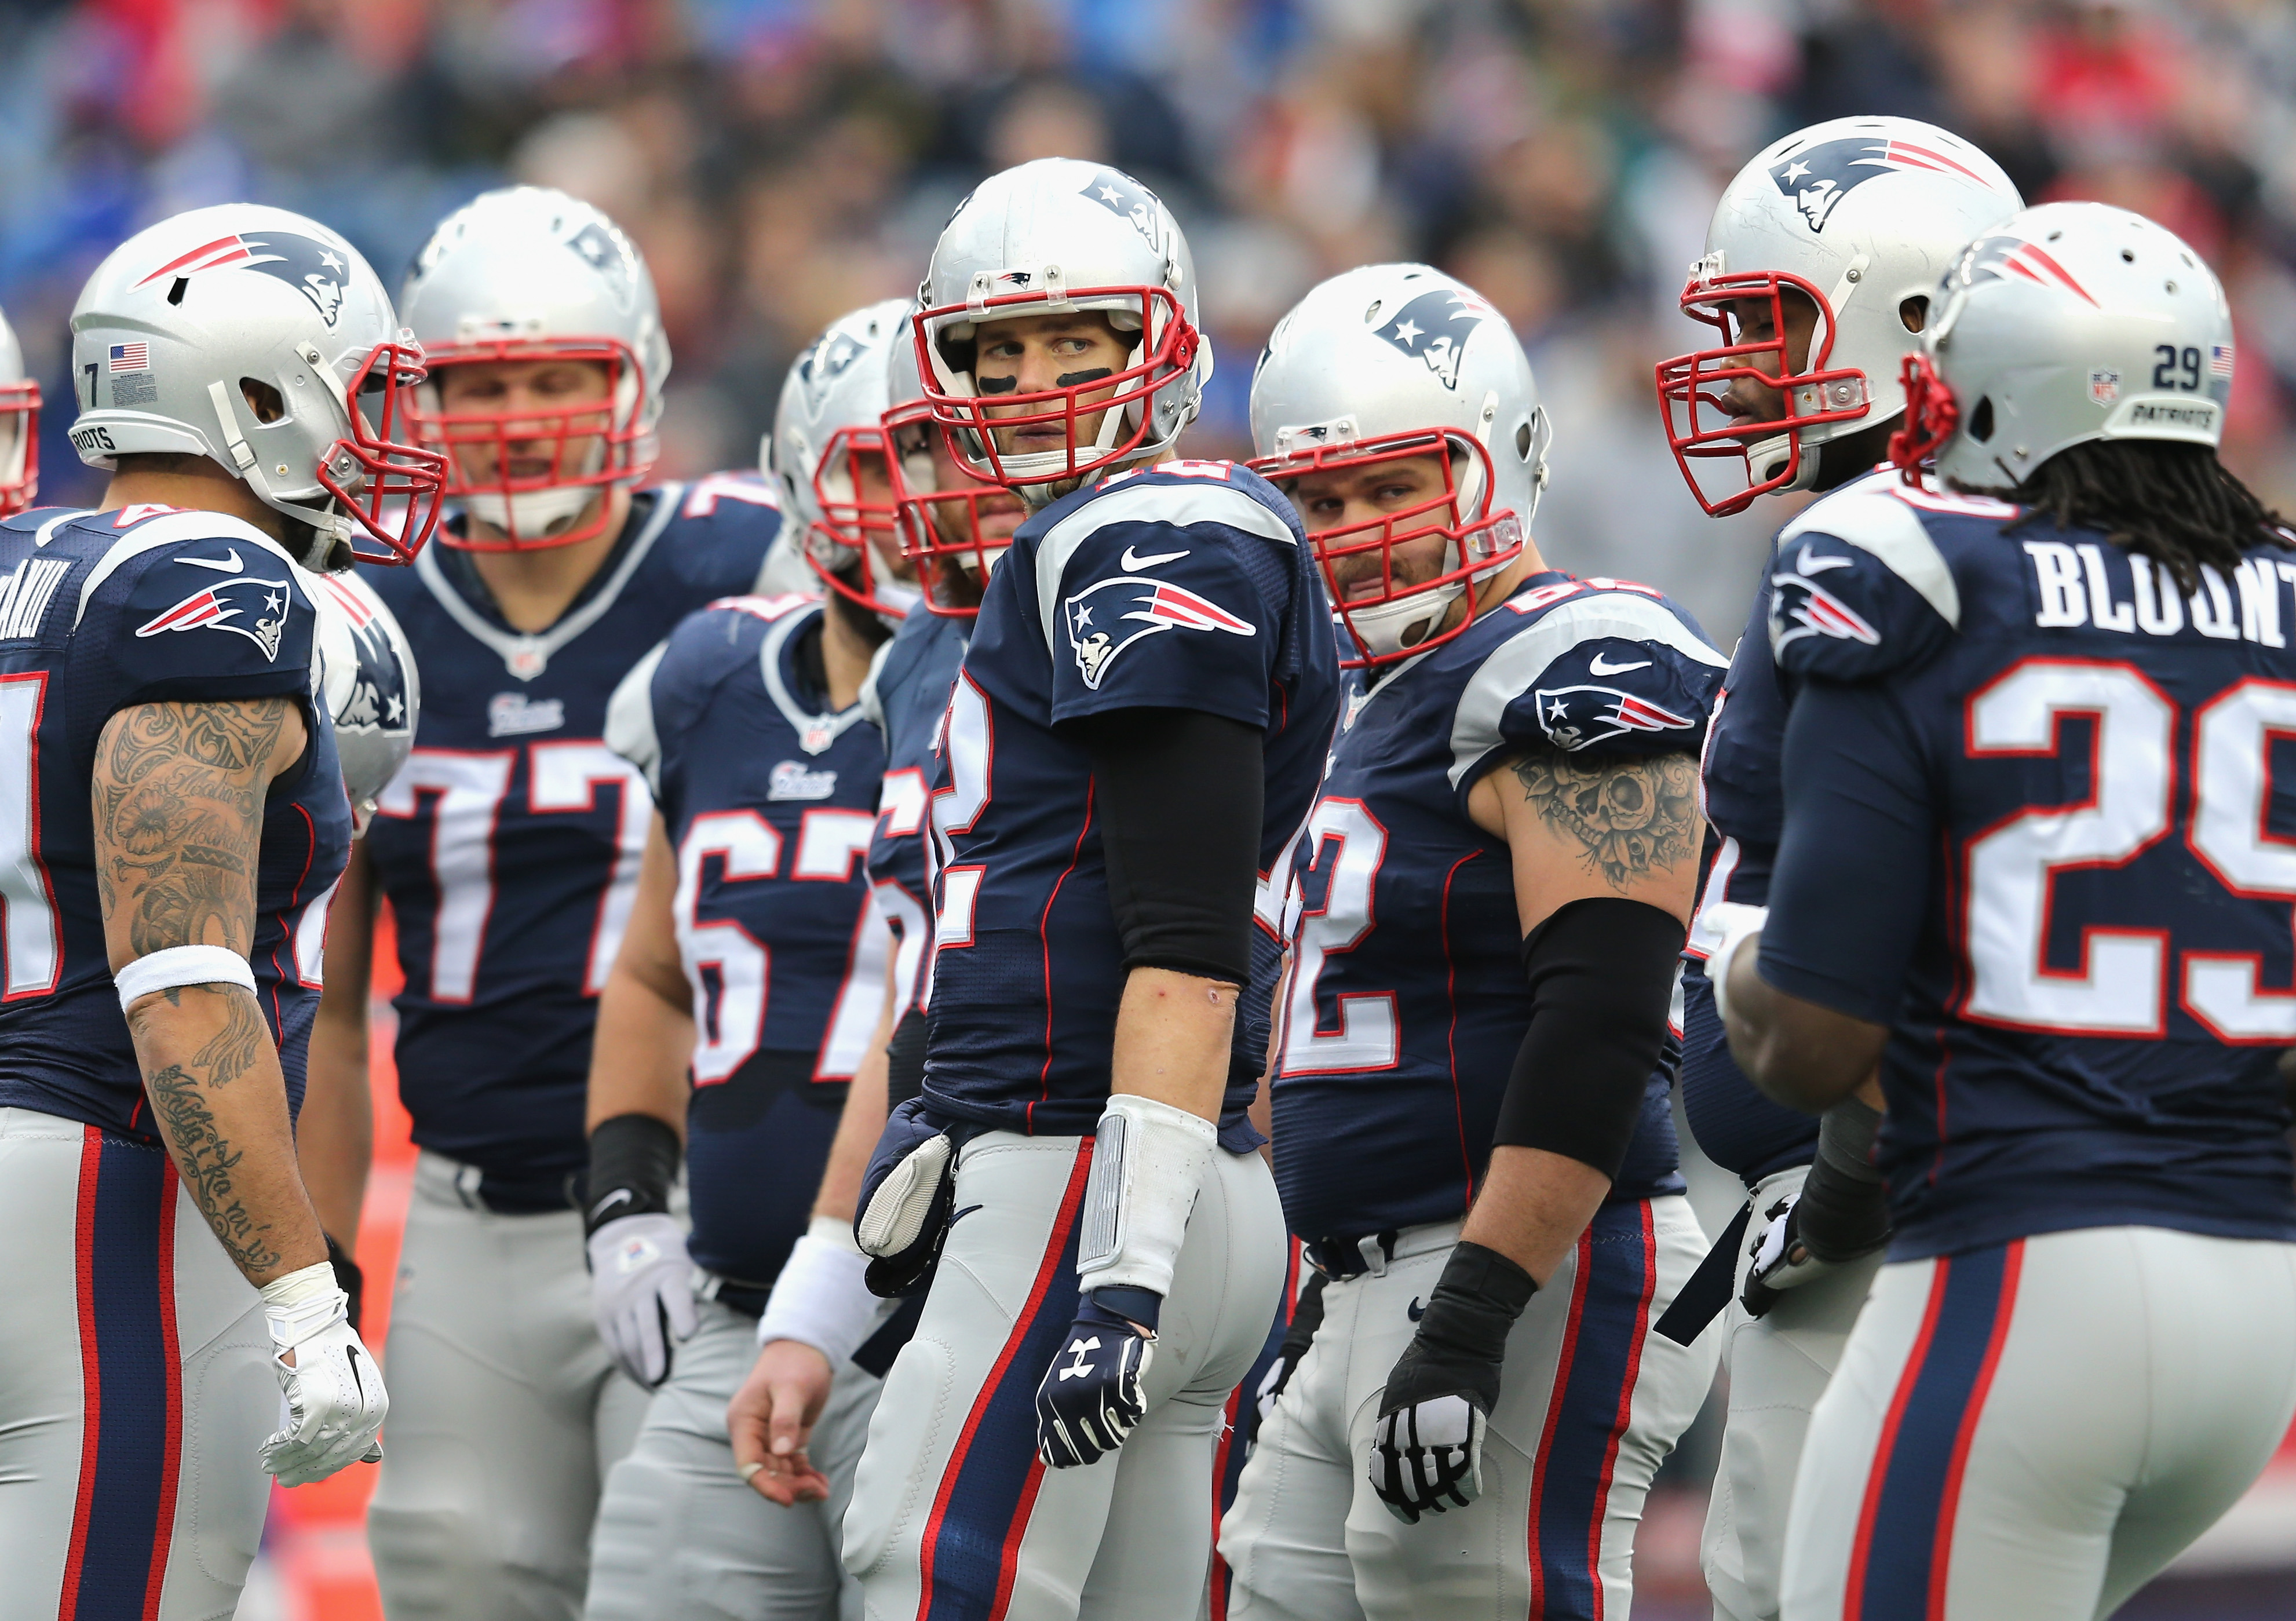 Tom Brady of the New England Patriots in a huddle against the Bills. (Getty Images)